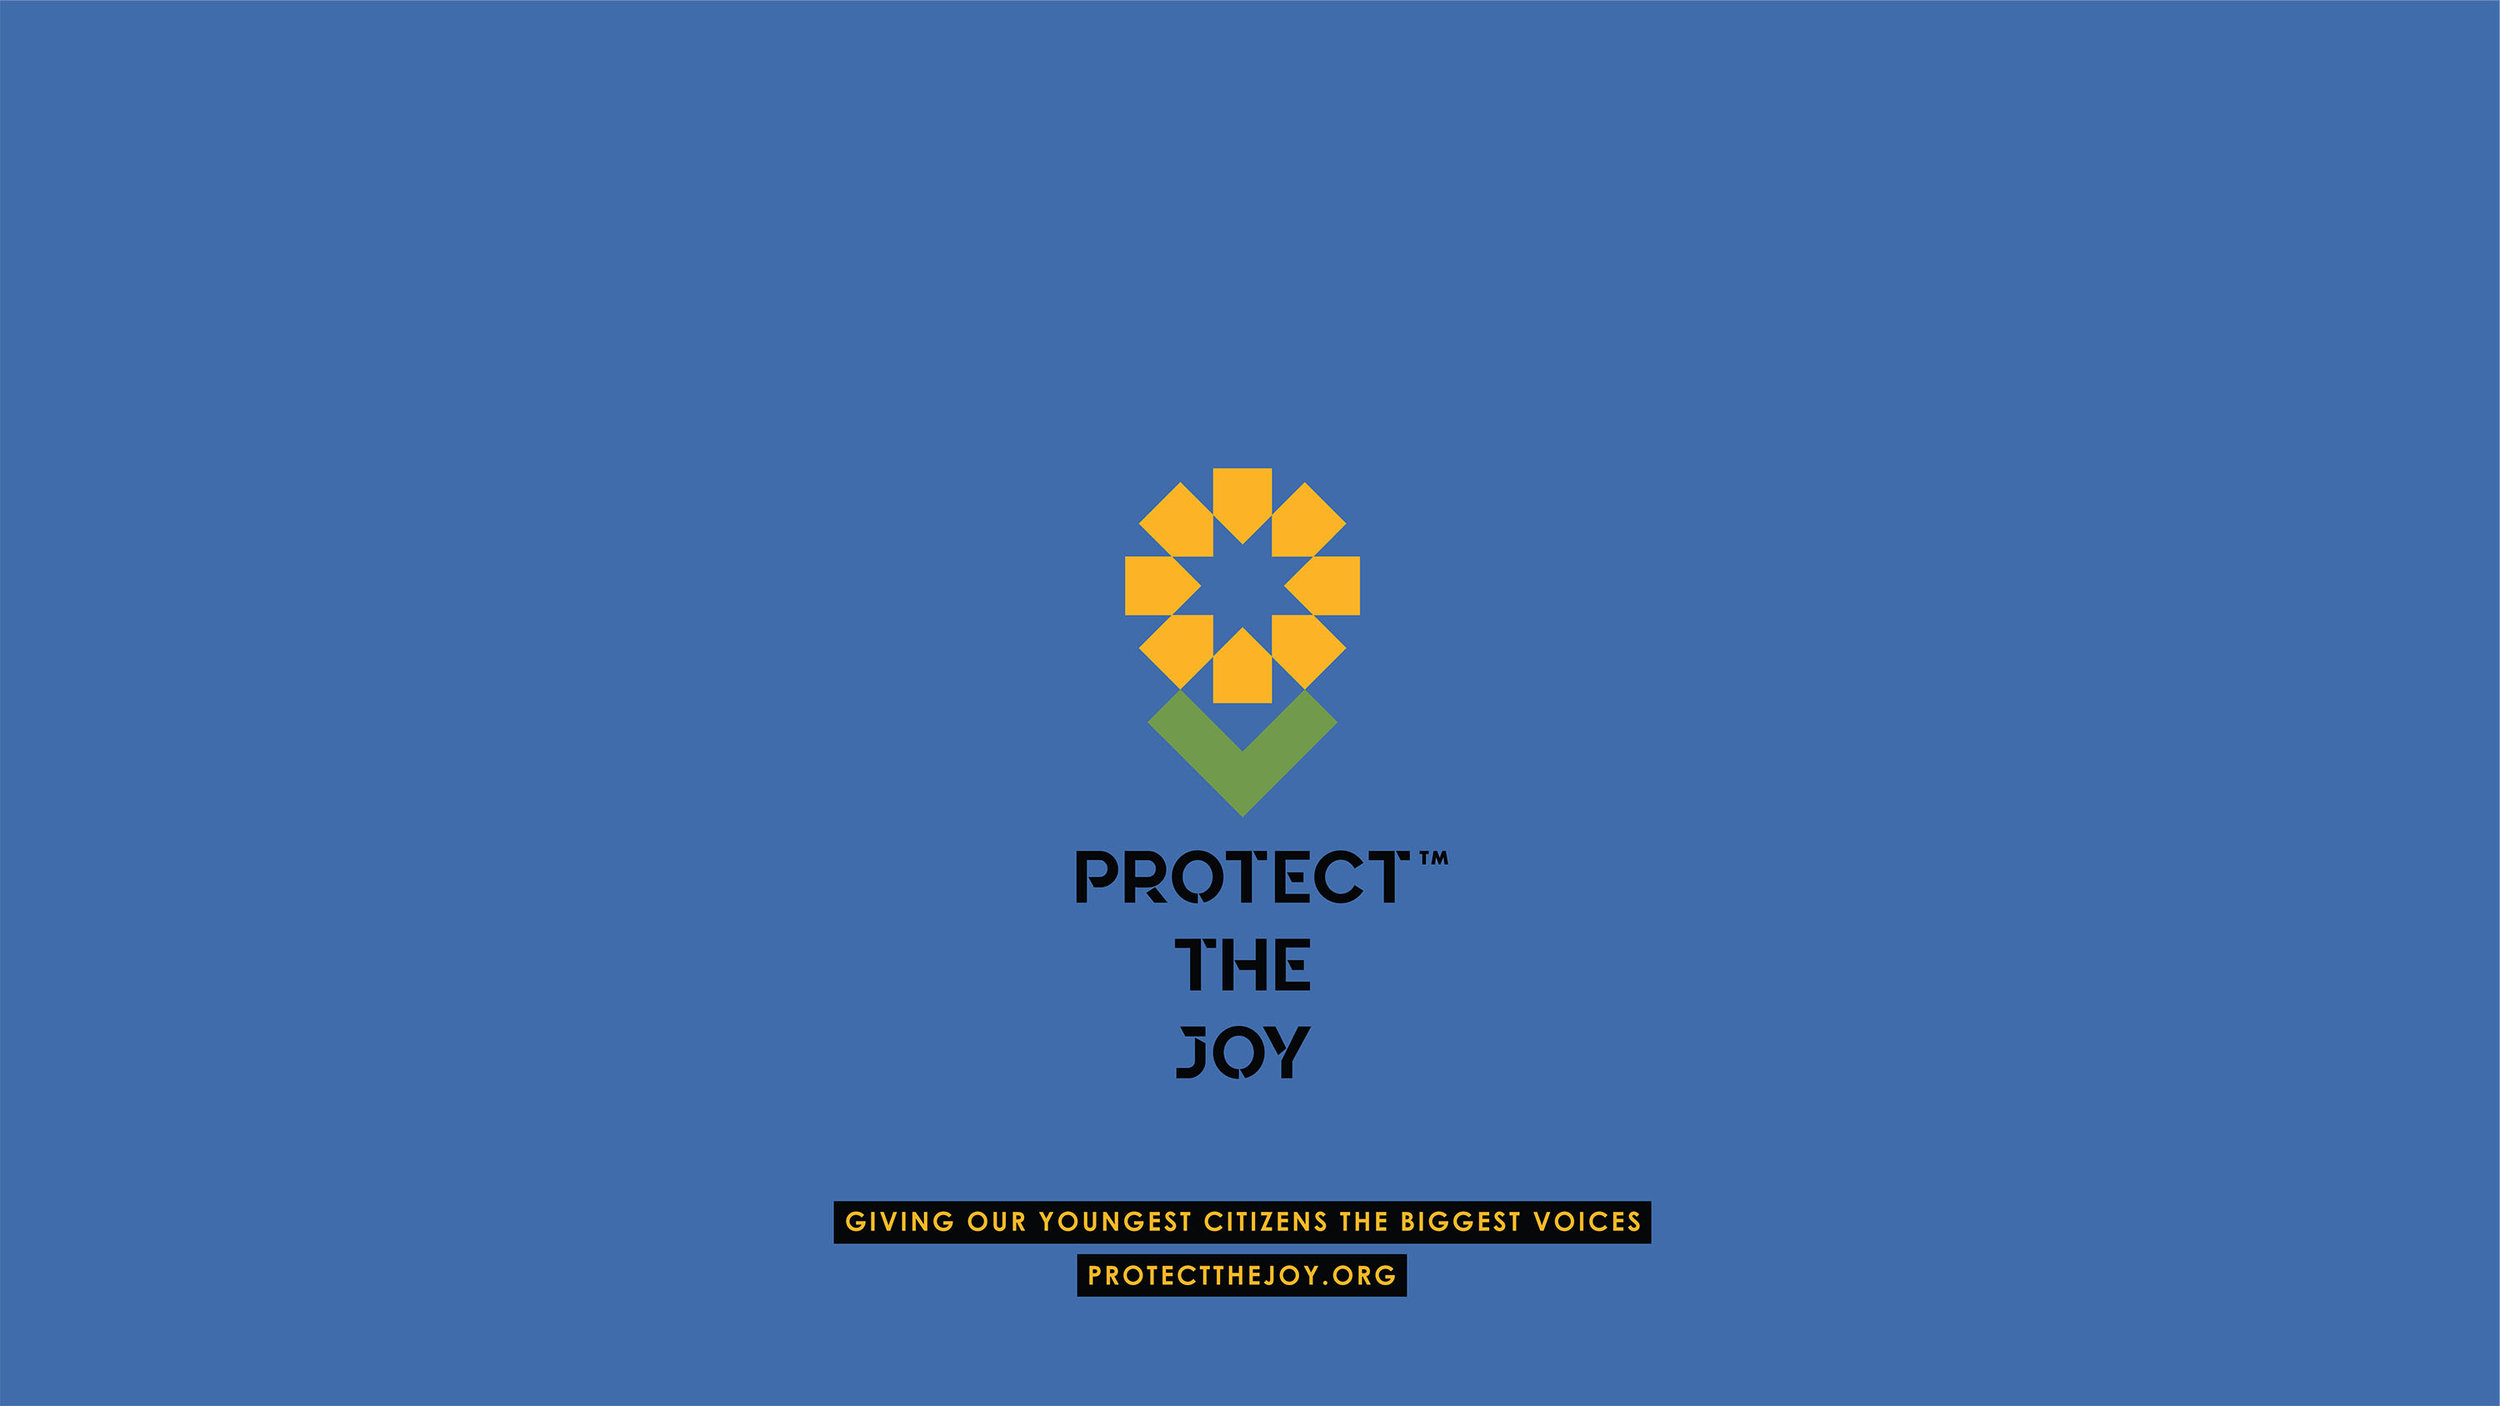 Protect-The-Joy-Sexual-Assault-Campaign-05.jpg